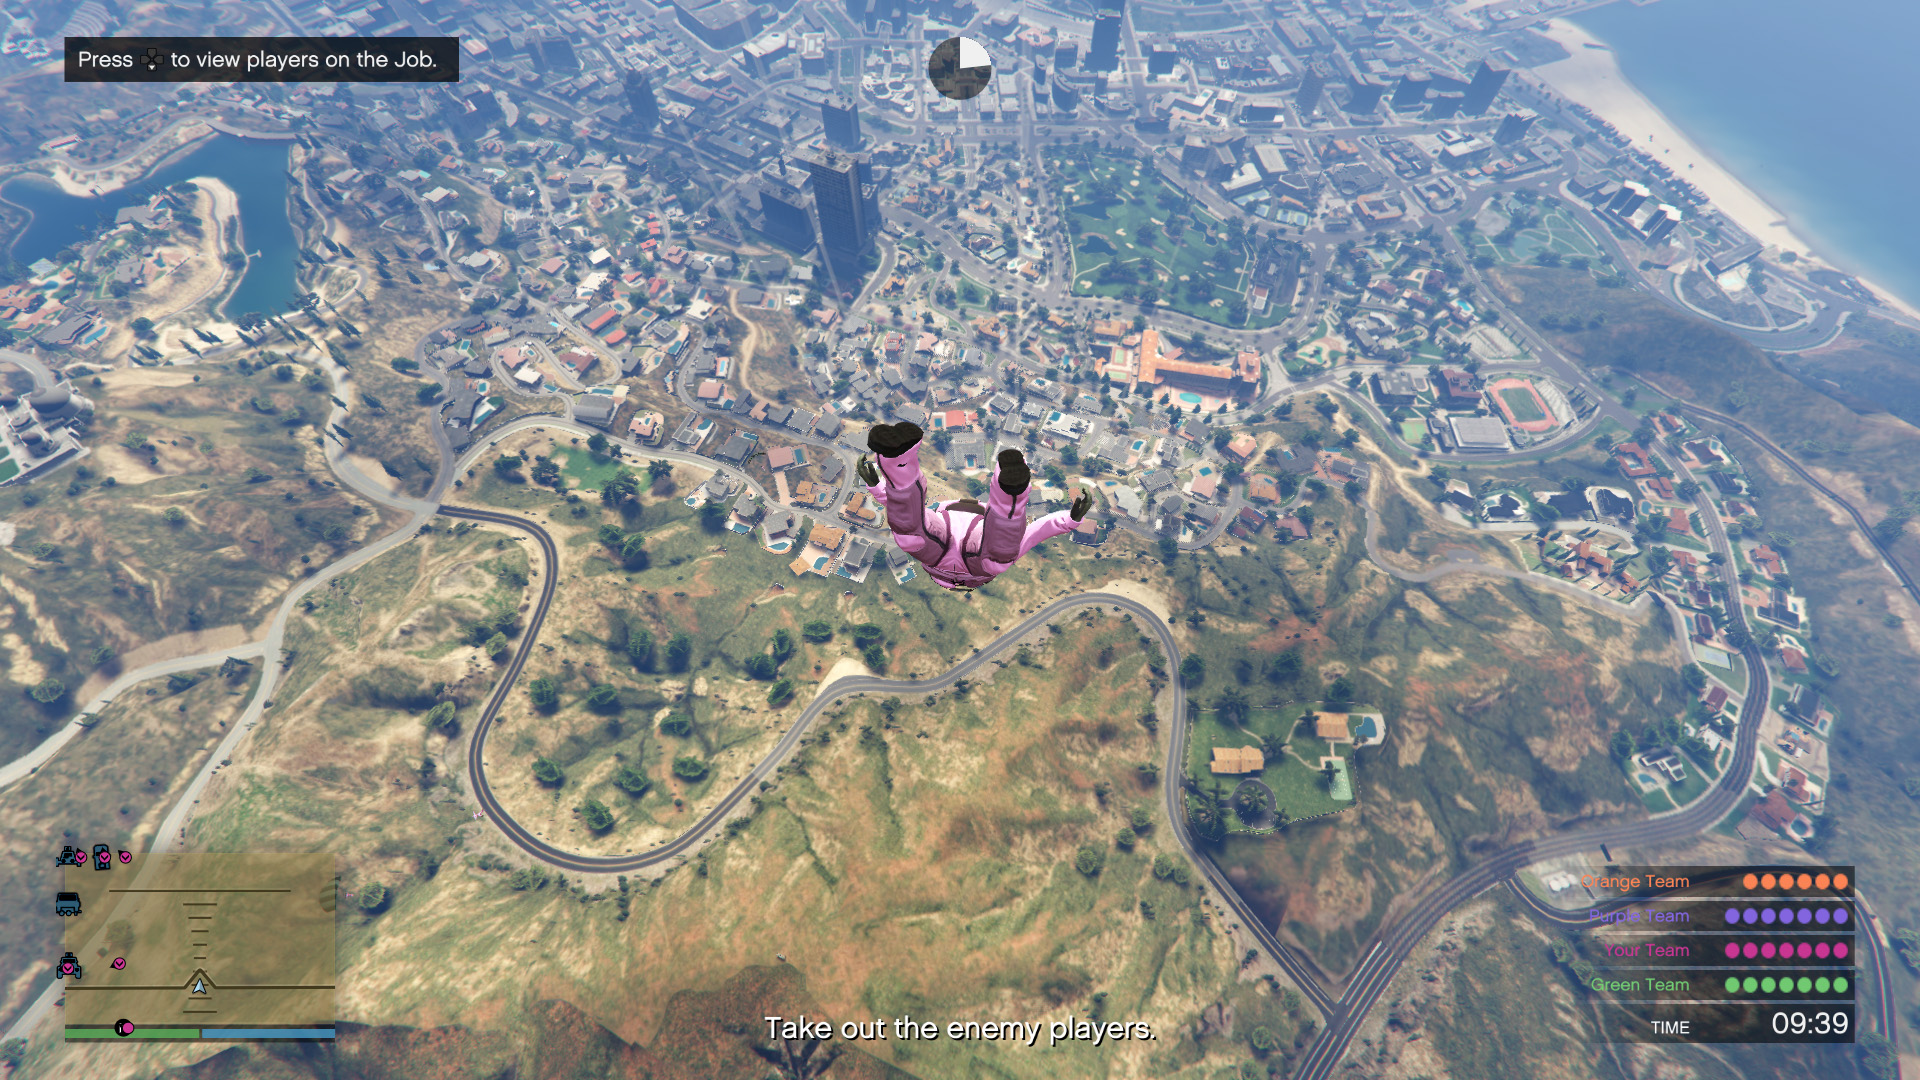 Playerunknown S Battlegrounds Maps Loot Maps Pictures: GTA Online's Motor Wars Is No PUBG, But It Doesn't Need To